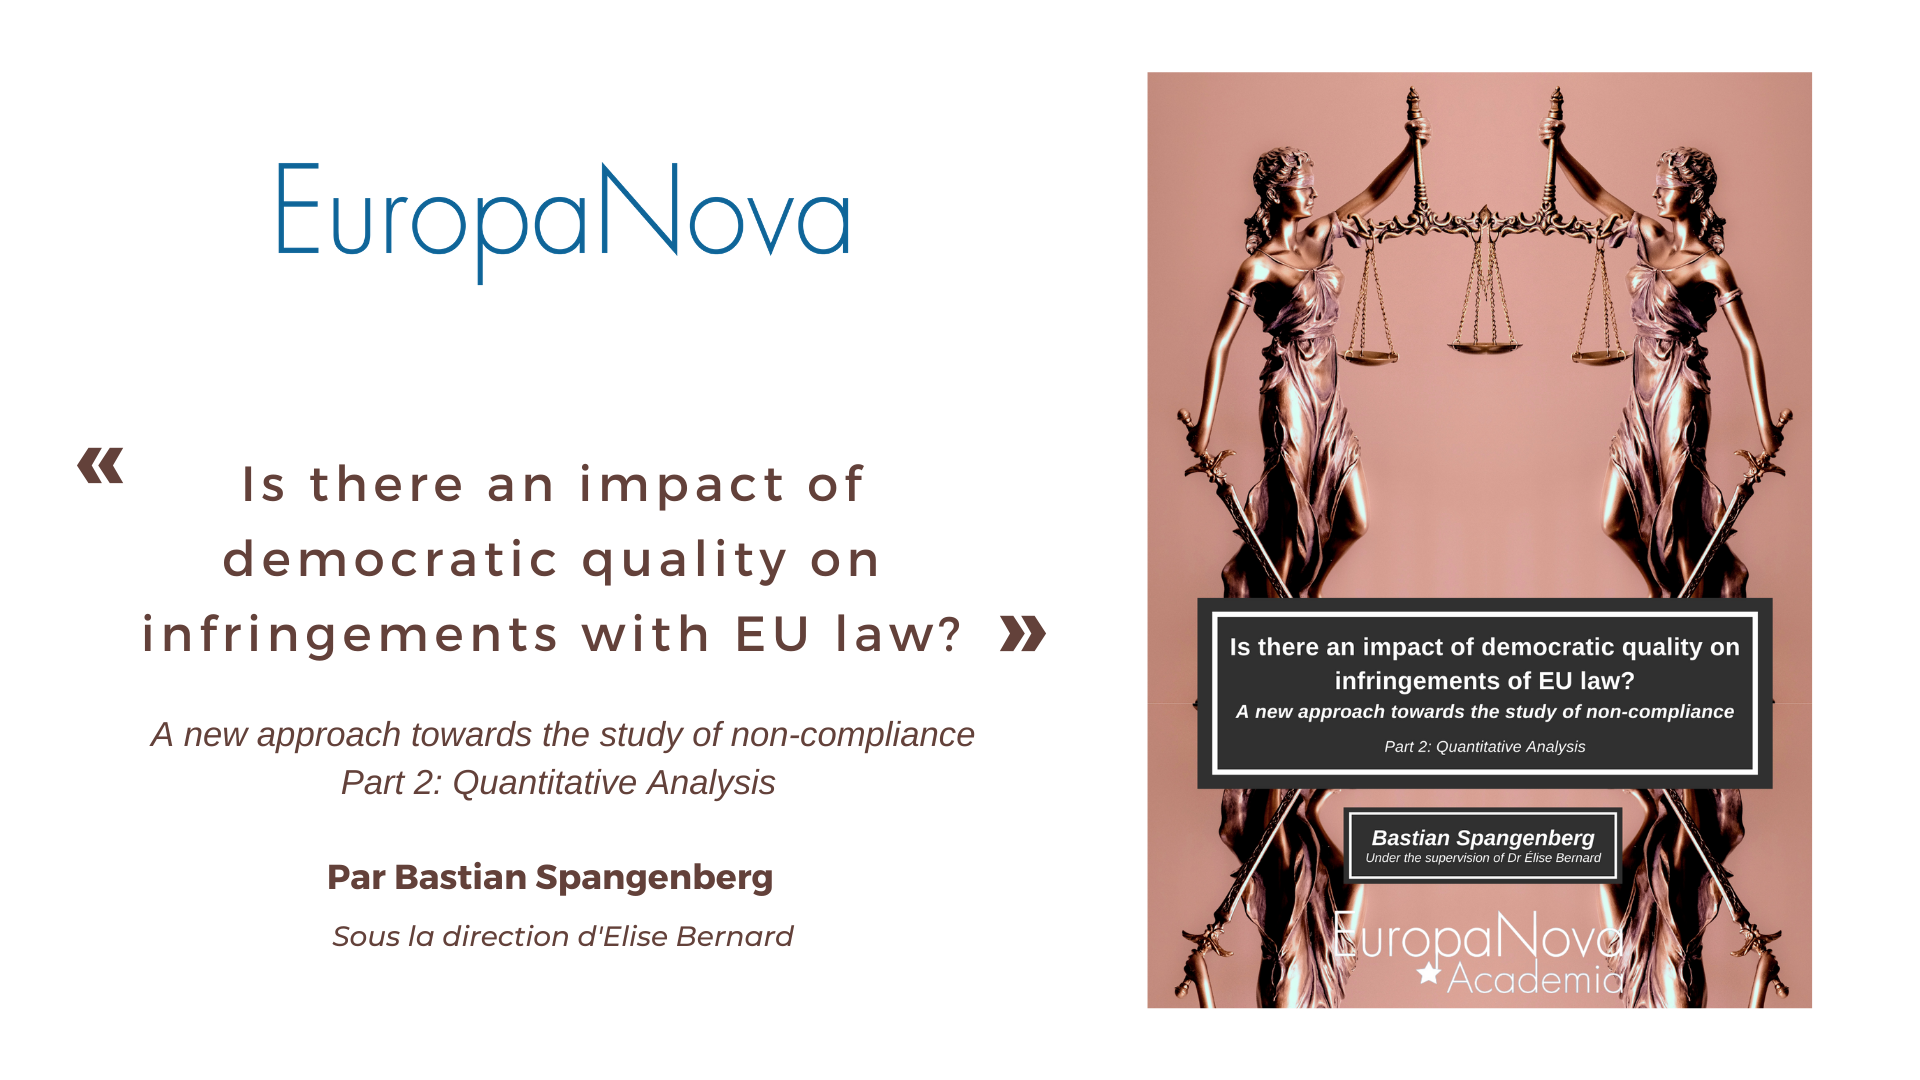 Is there an impact of democratic quality on infringements with EU law ? Une étude de Bastian Spangenberg (Partie II)